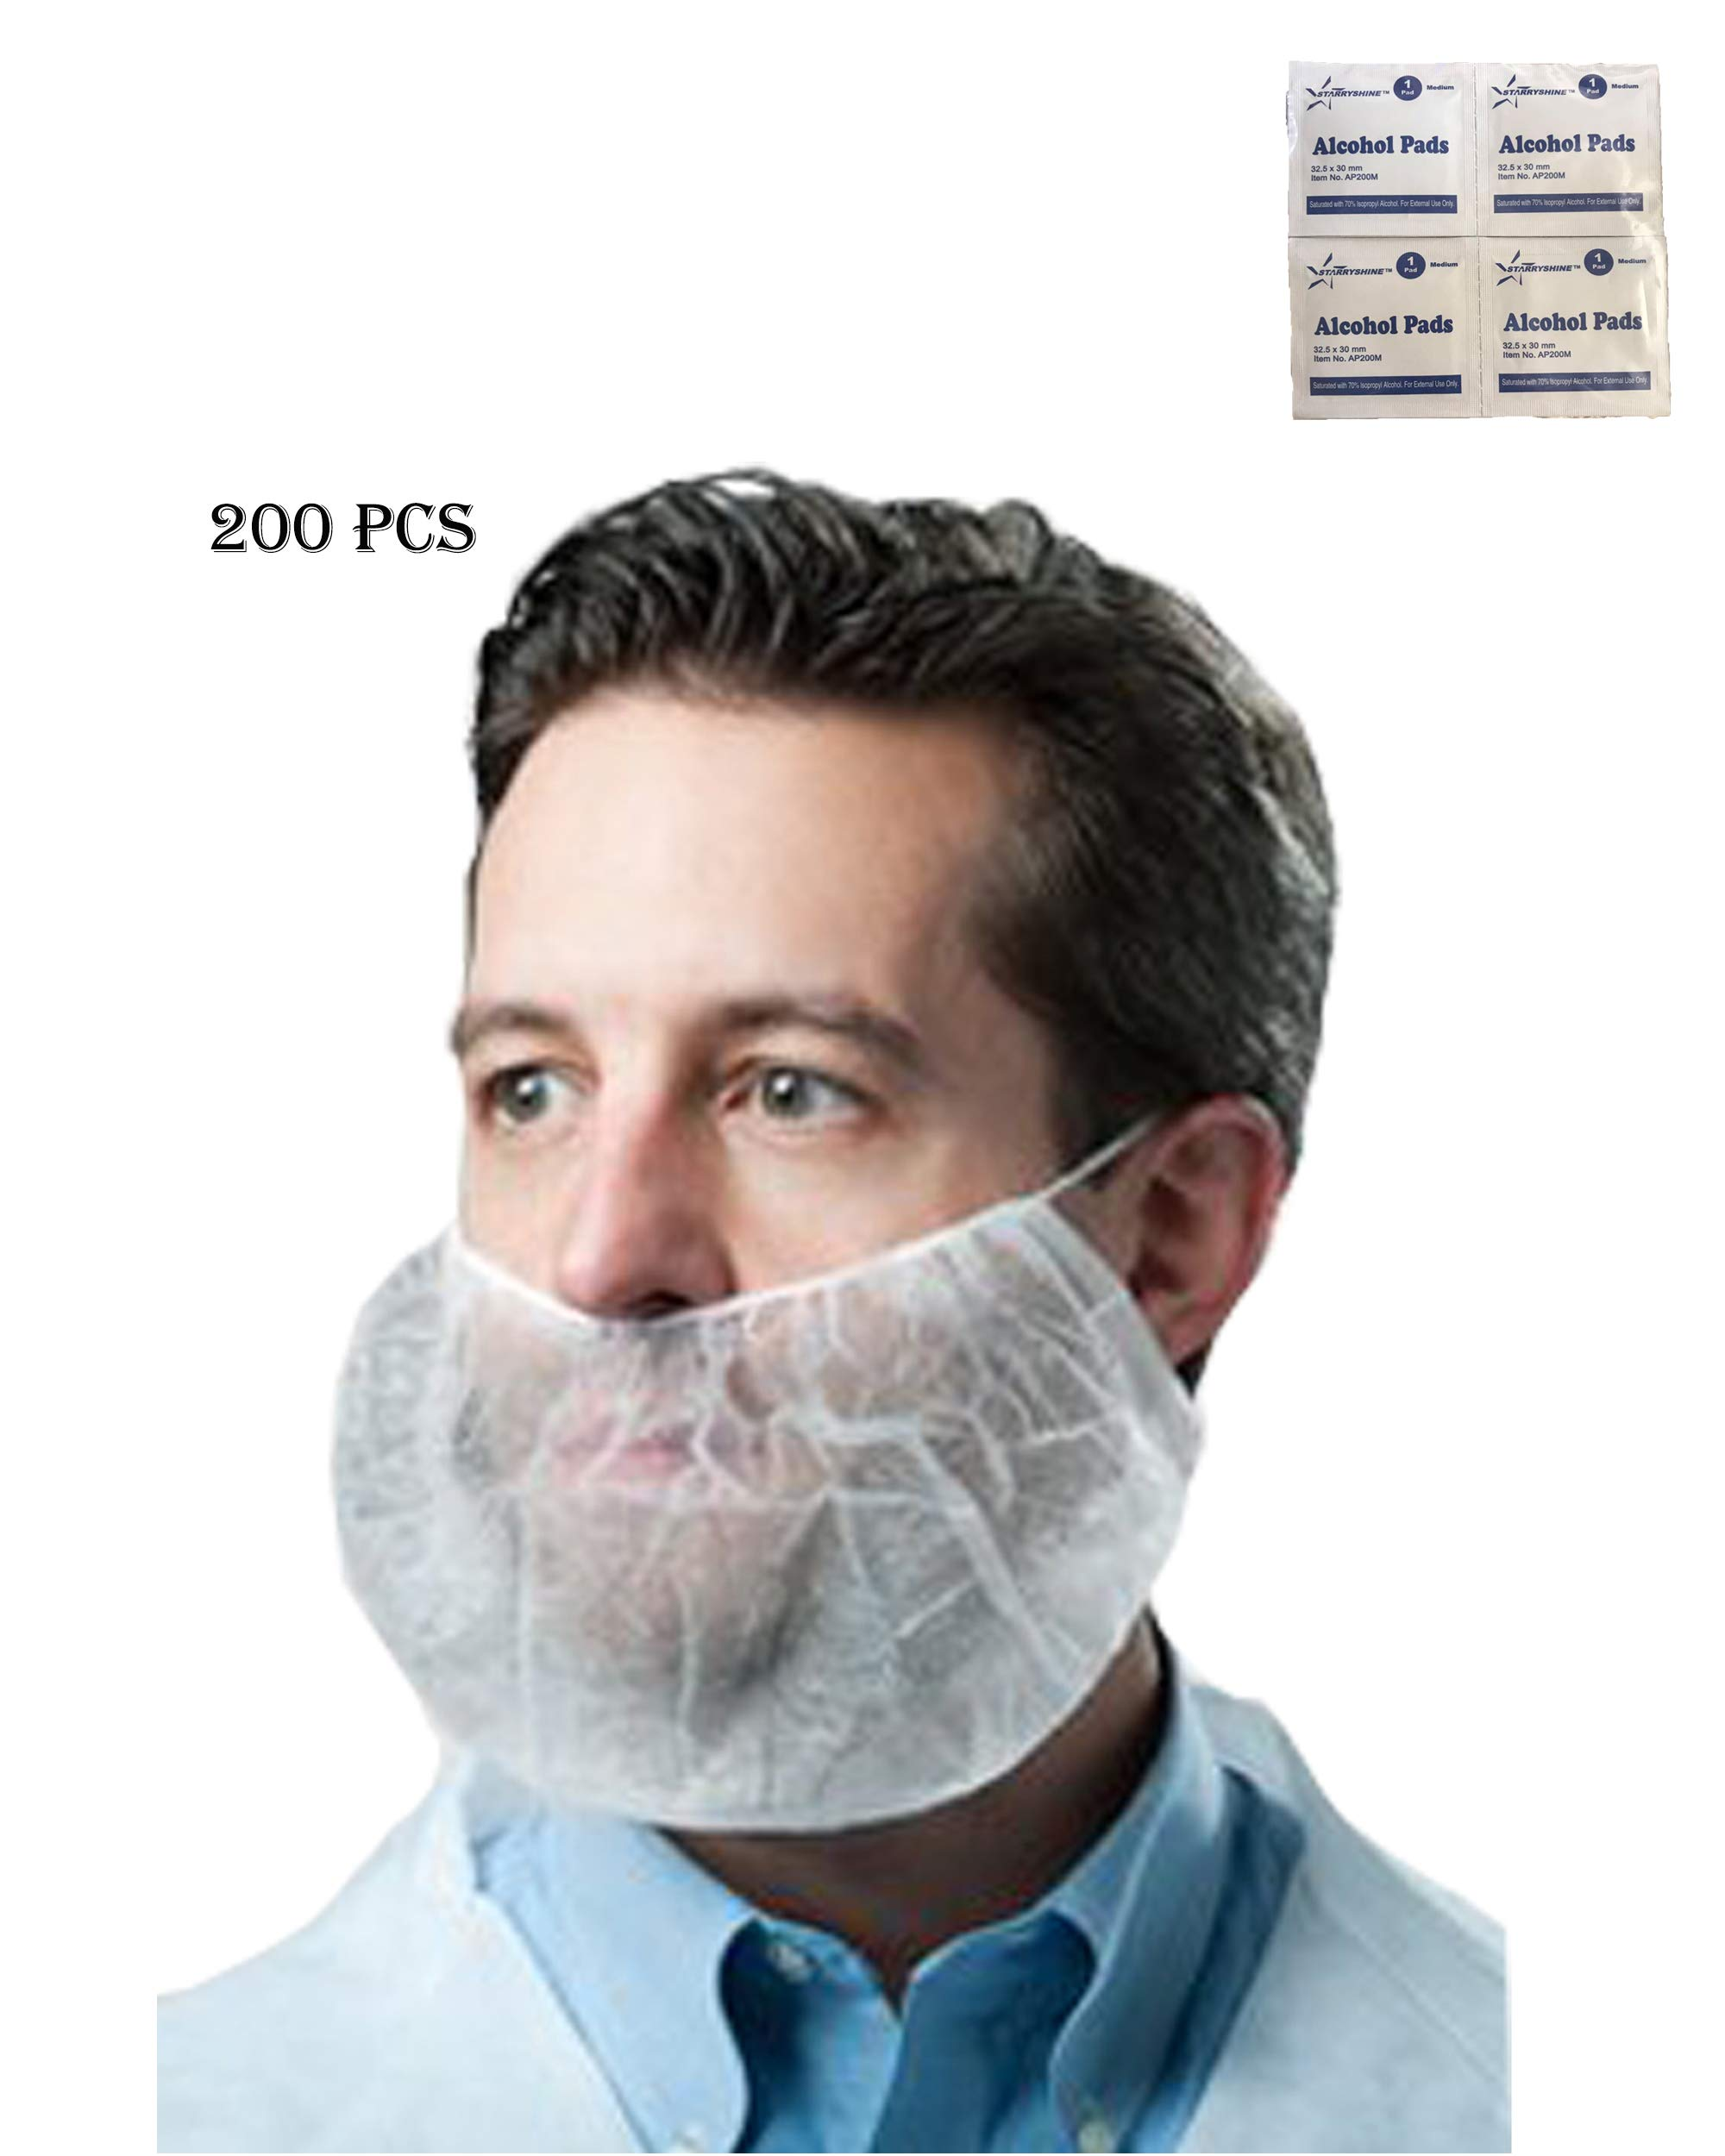 Economical Disposable Bouffant Beard Cover/ Protector, Beard Nets (Non-Woven, Latex-Free)-- Food Industry, Restaurants, Cooking, Healthcare Facilities and More--Bonus Alcohol Pads Include